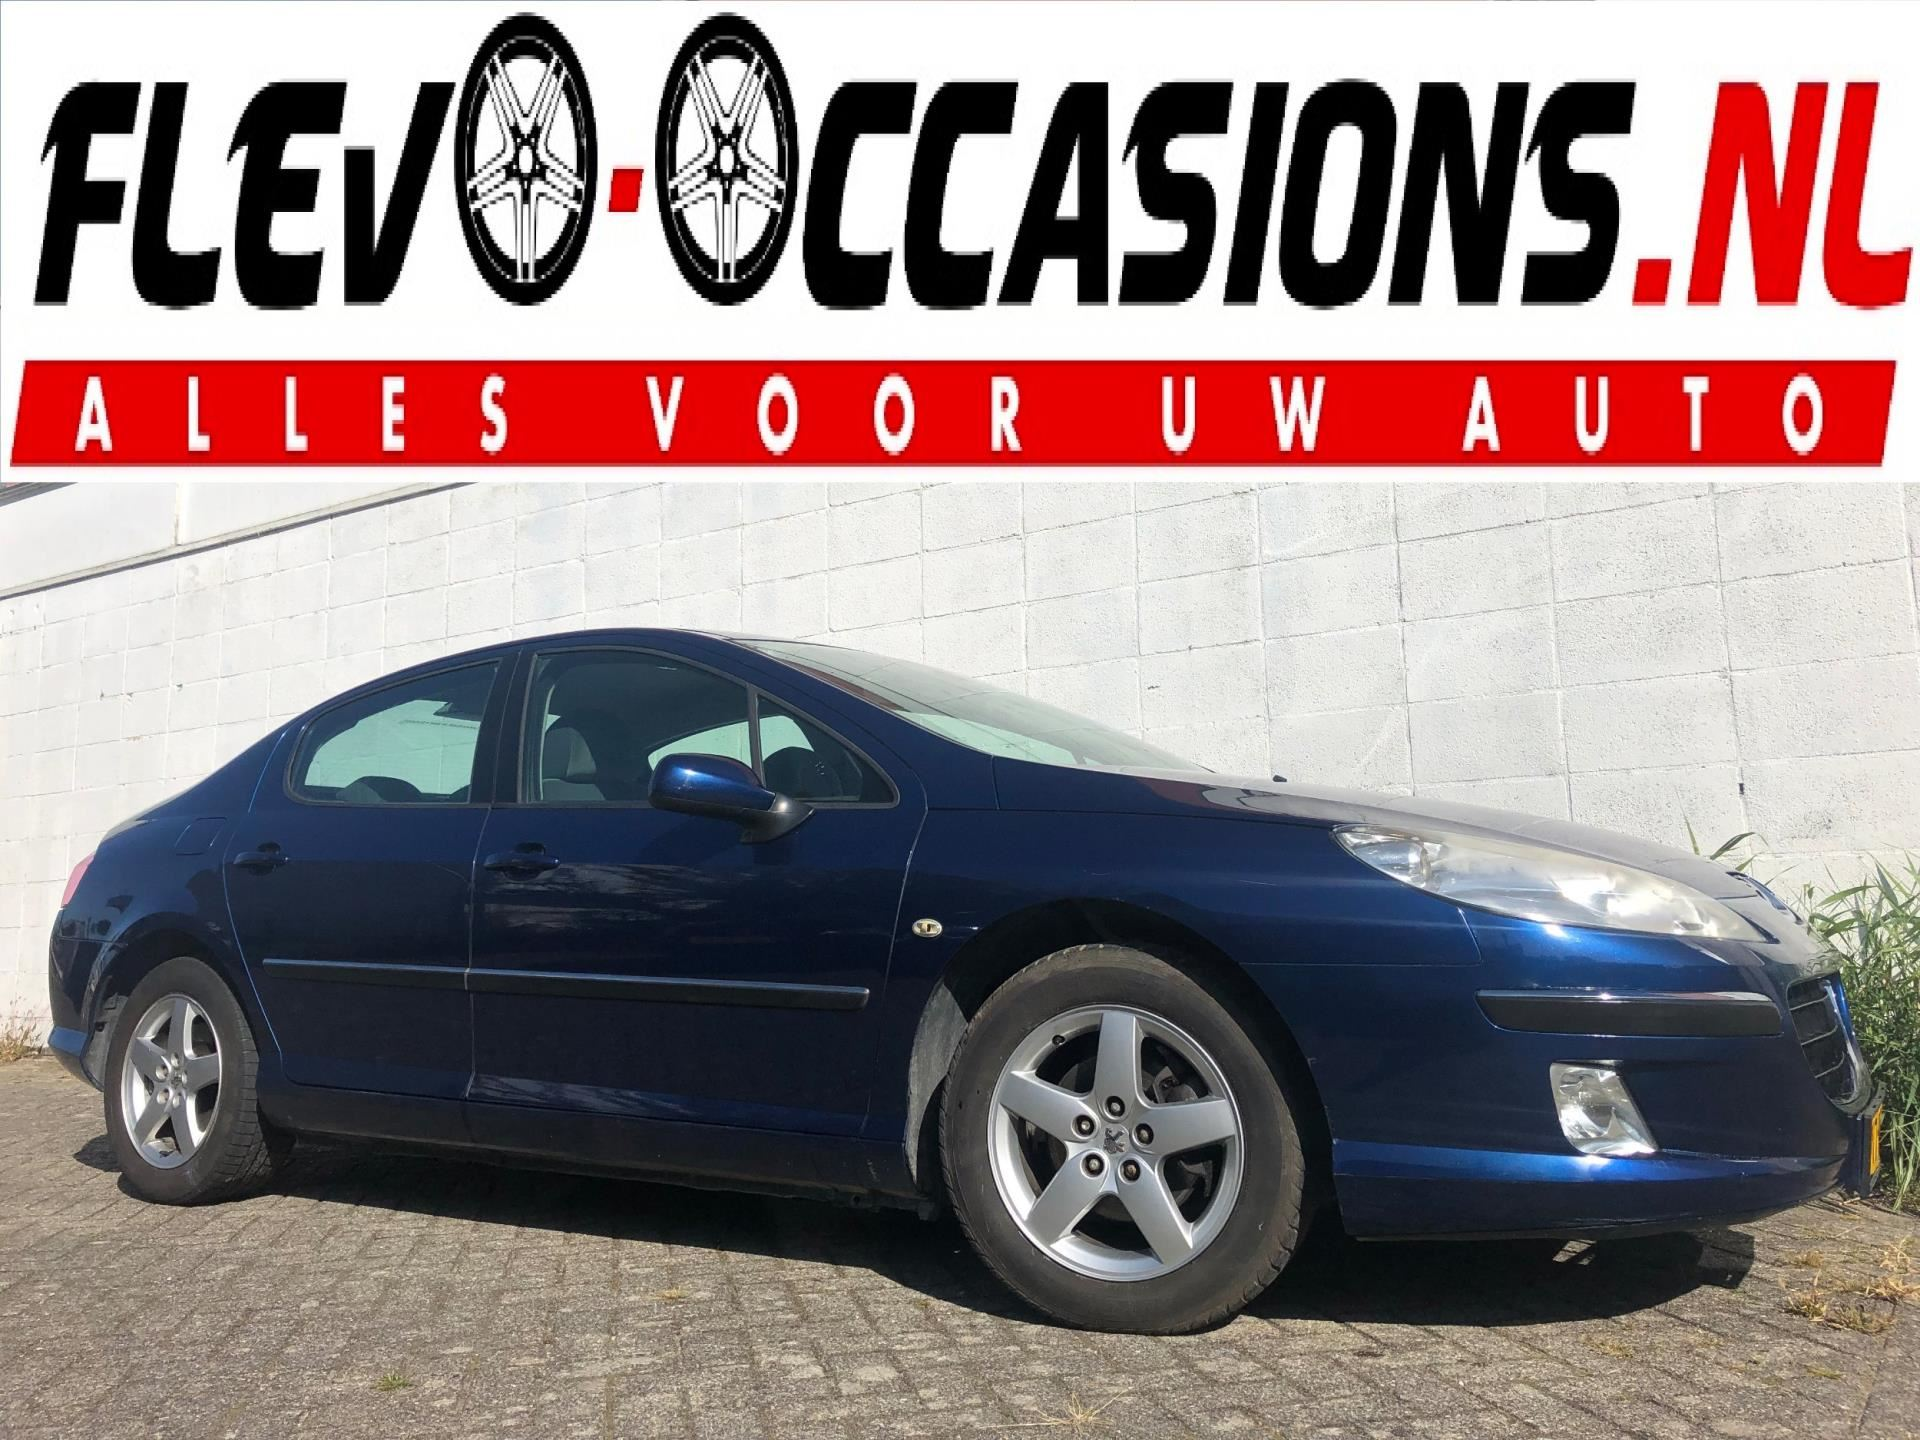 Peugeot 407 occasion - Flevo Occasions